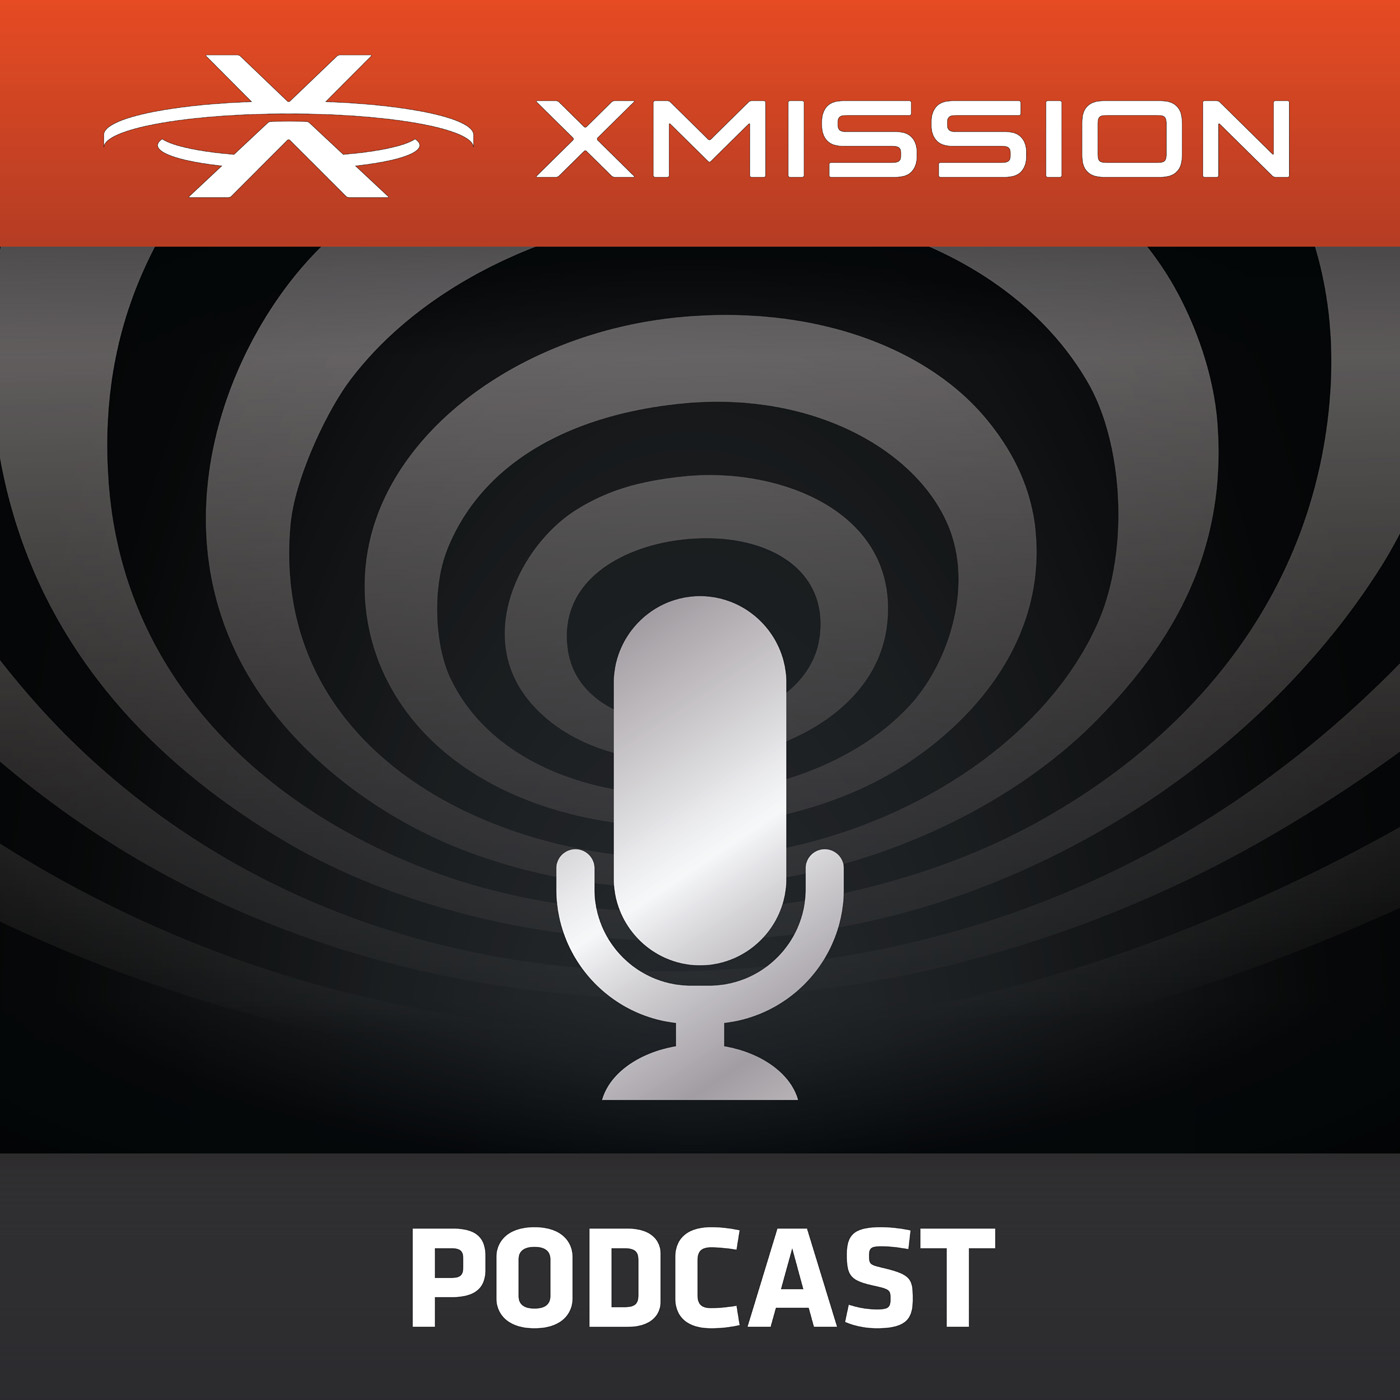 XMission Podcasts